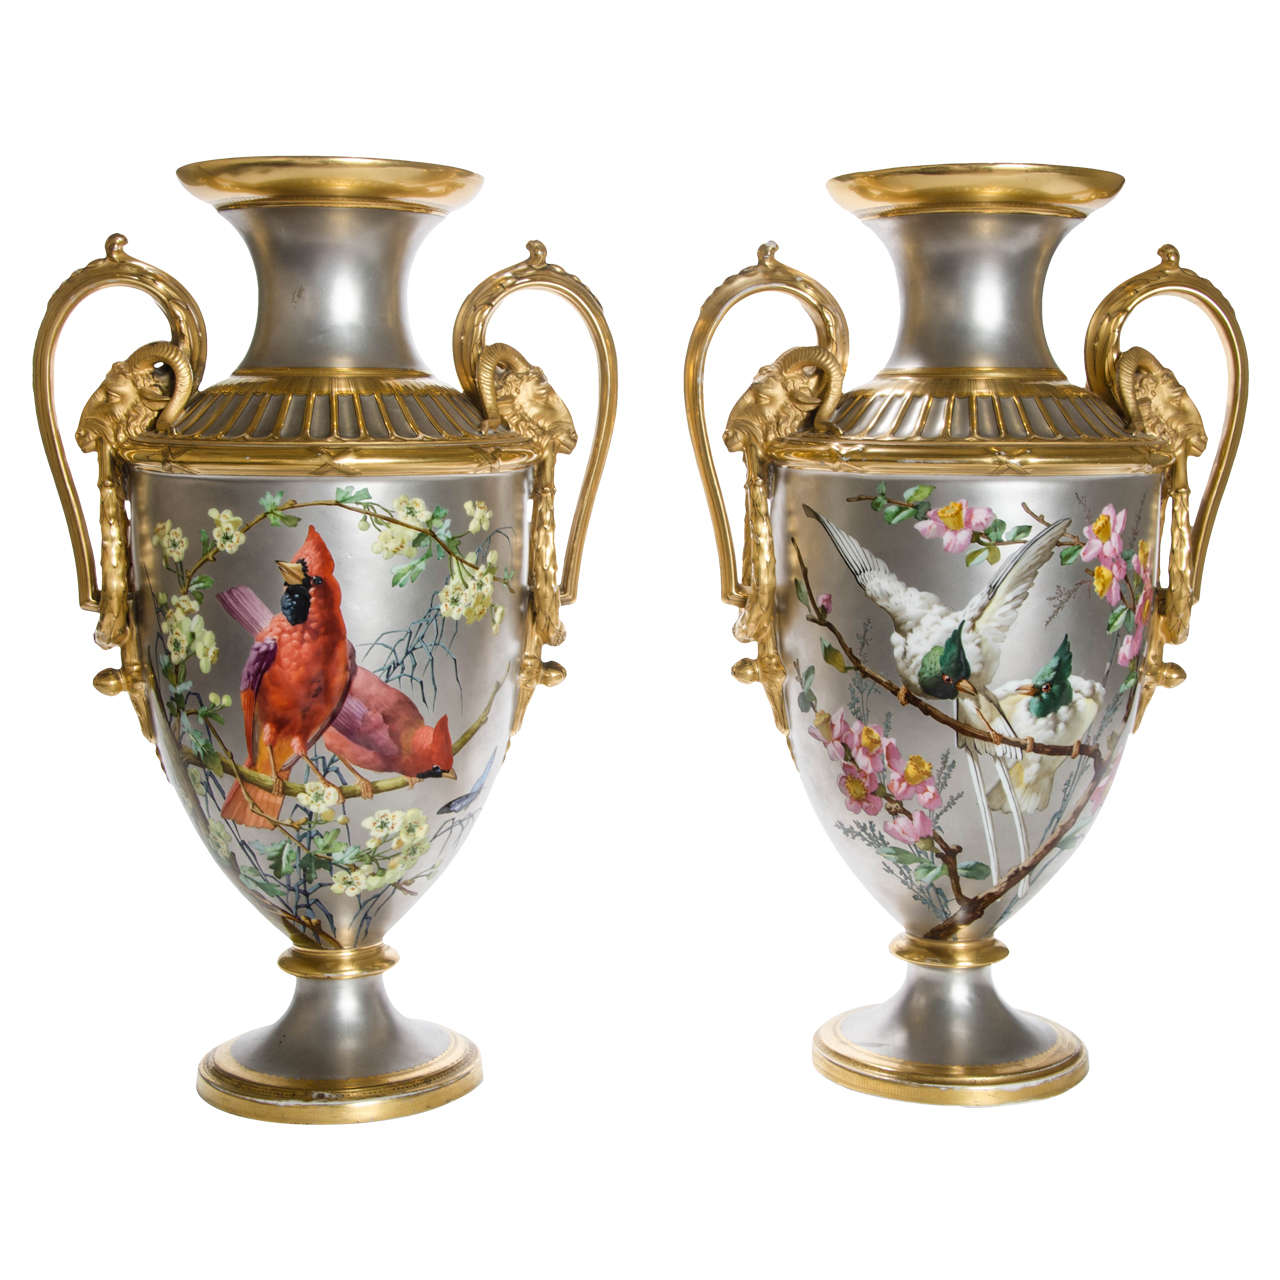 Pair of 19th Century Platinum Ground Two Handled Vases by P. Soustre 1